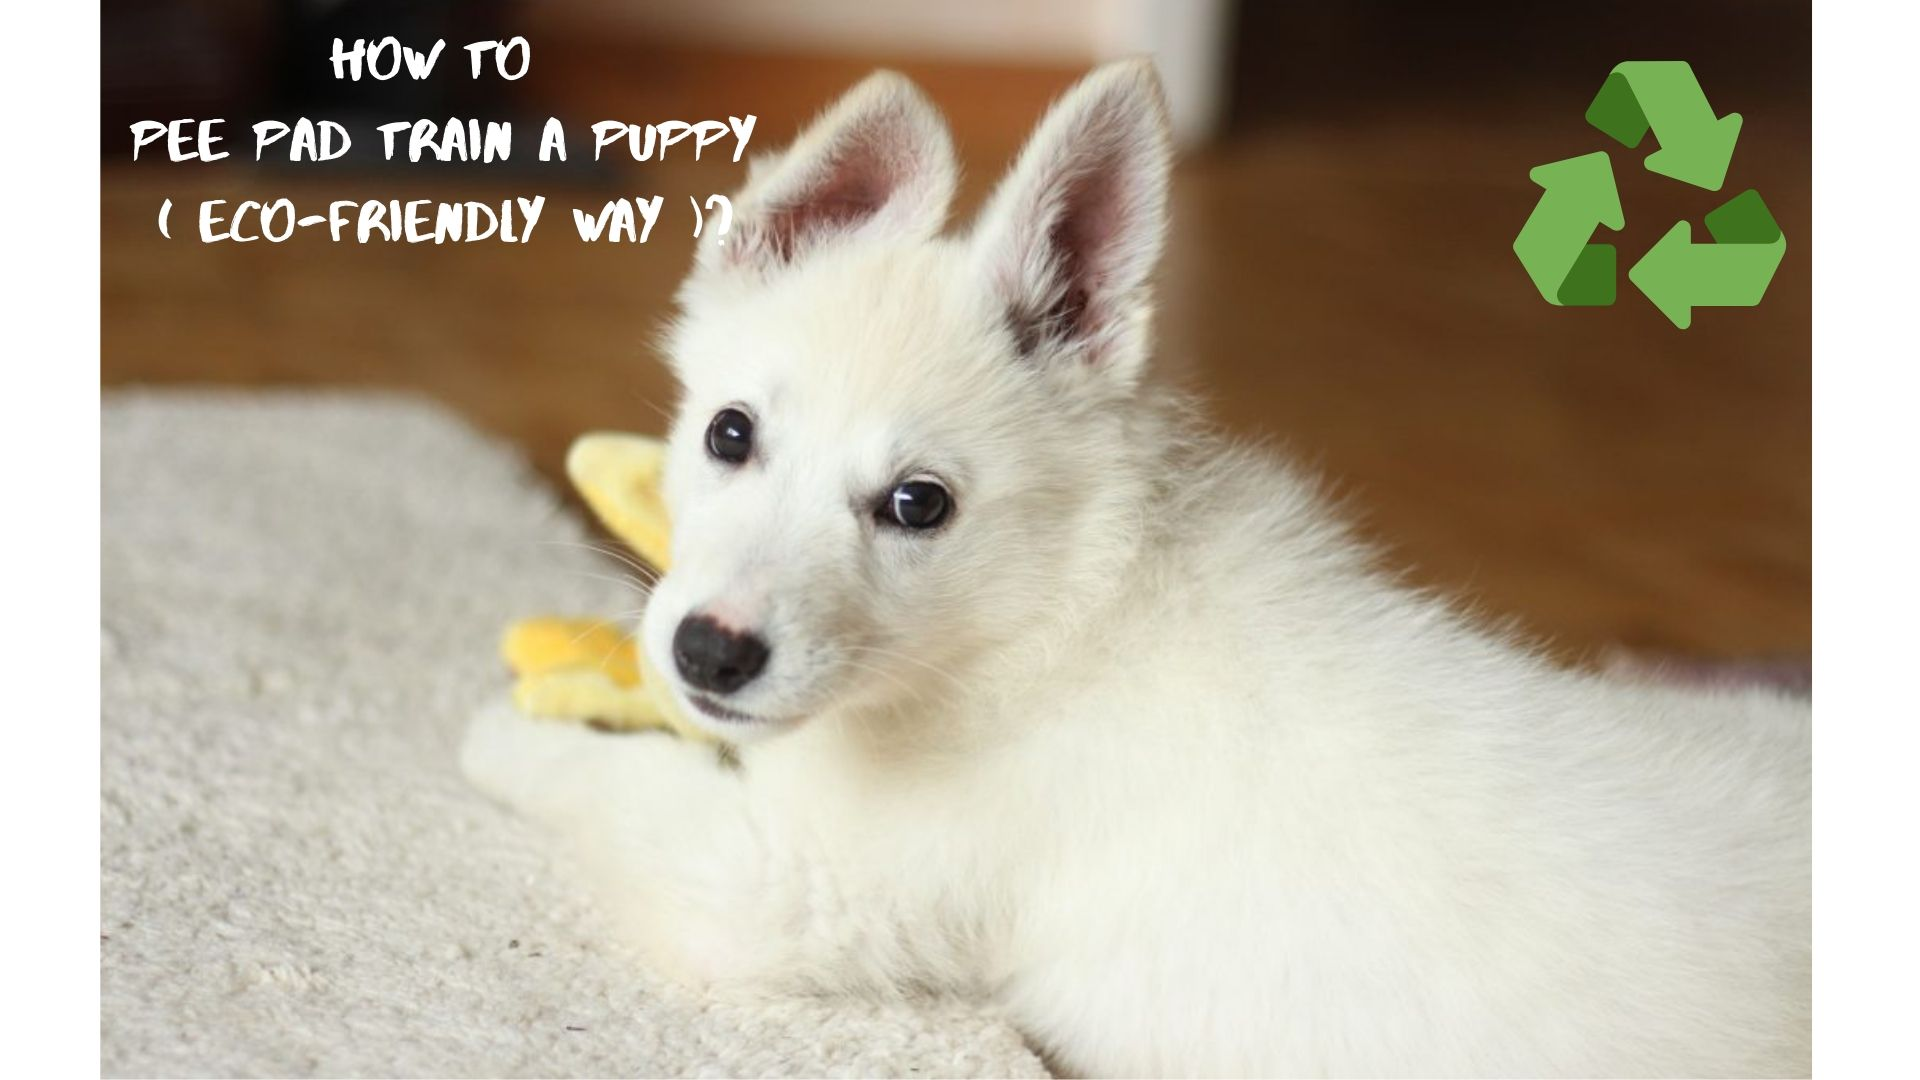 How to Pee Pad Train A Puppy ( Eco-Friendly Way )